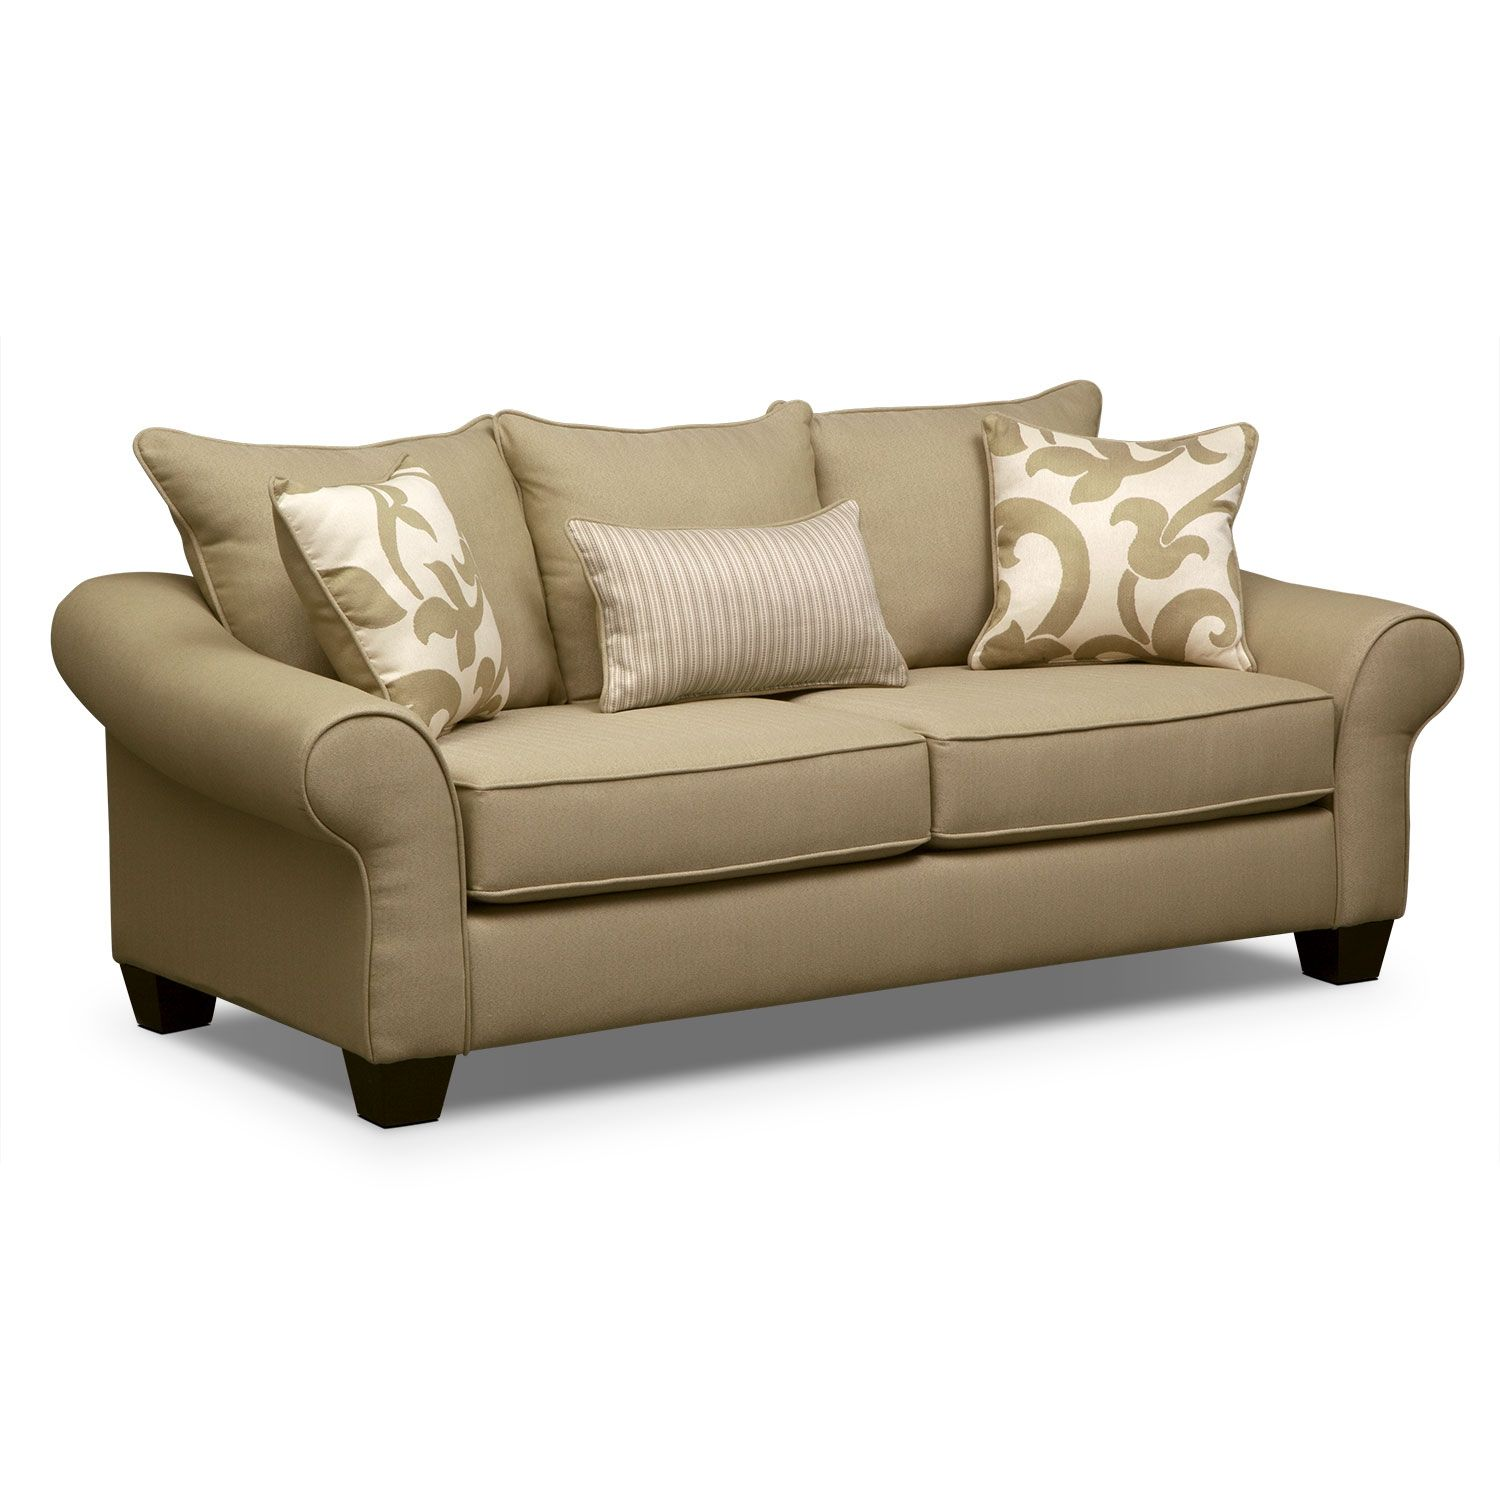 Living Room Furniture Colette Khaki Sofa Value City 399